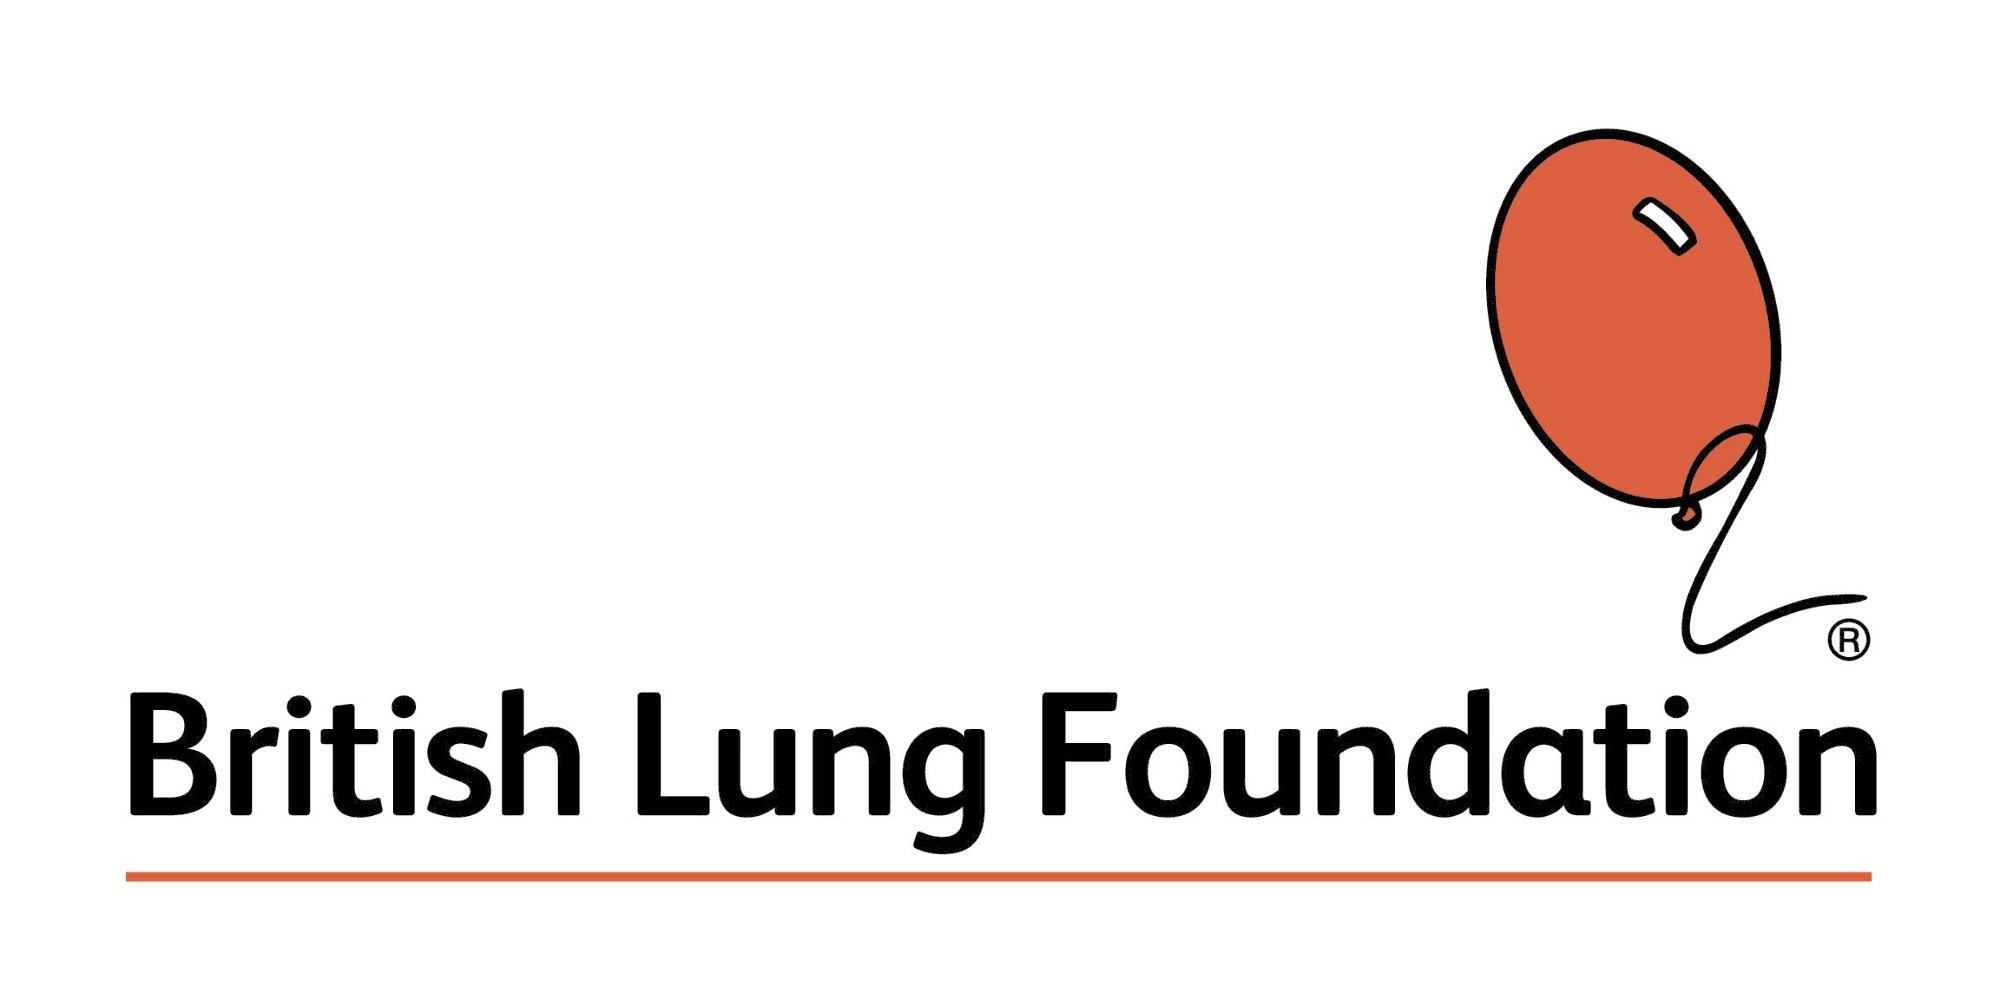 The British Lung Foundation